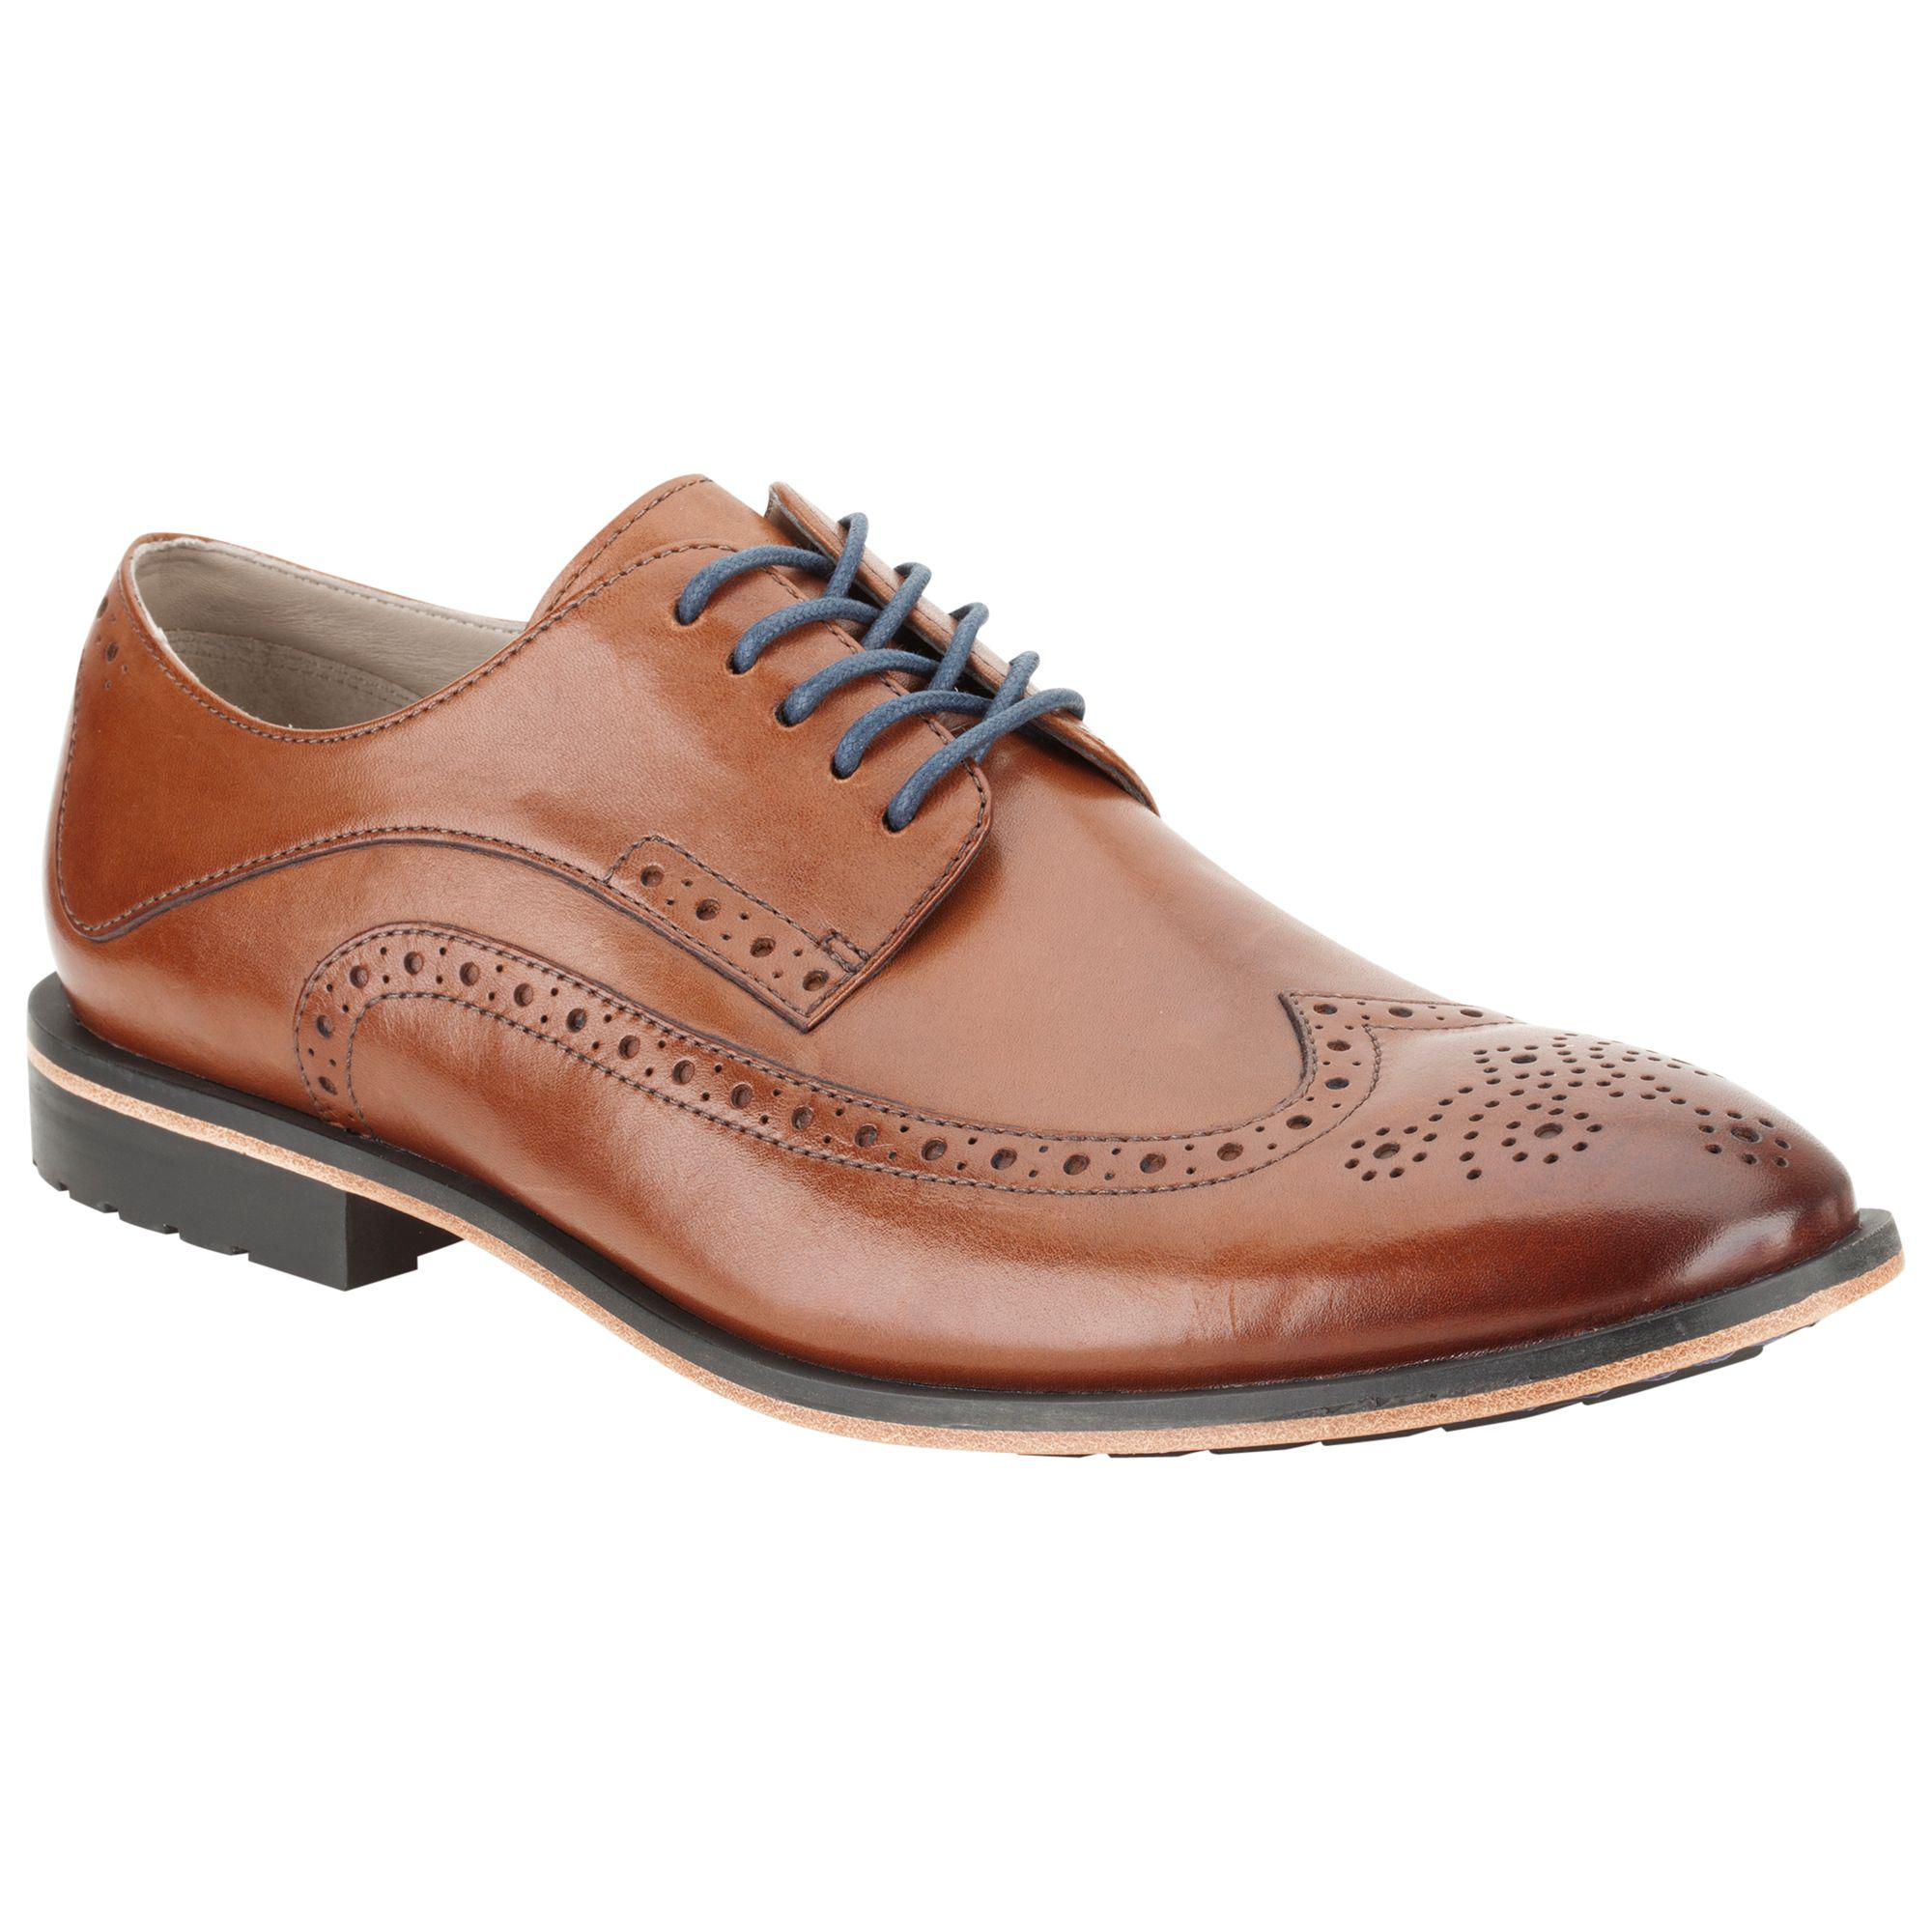 ca319b60b4 Clarks Gatley Limit Leather Brogue Derby Shoes in Brown for Men - Lyst